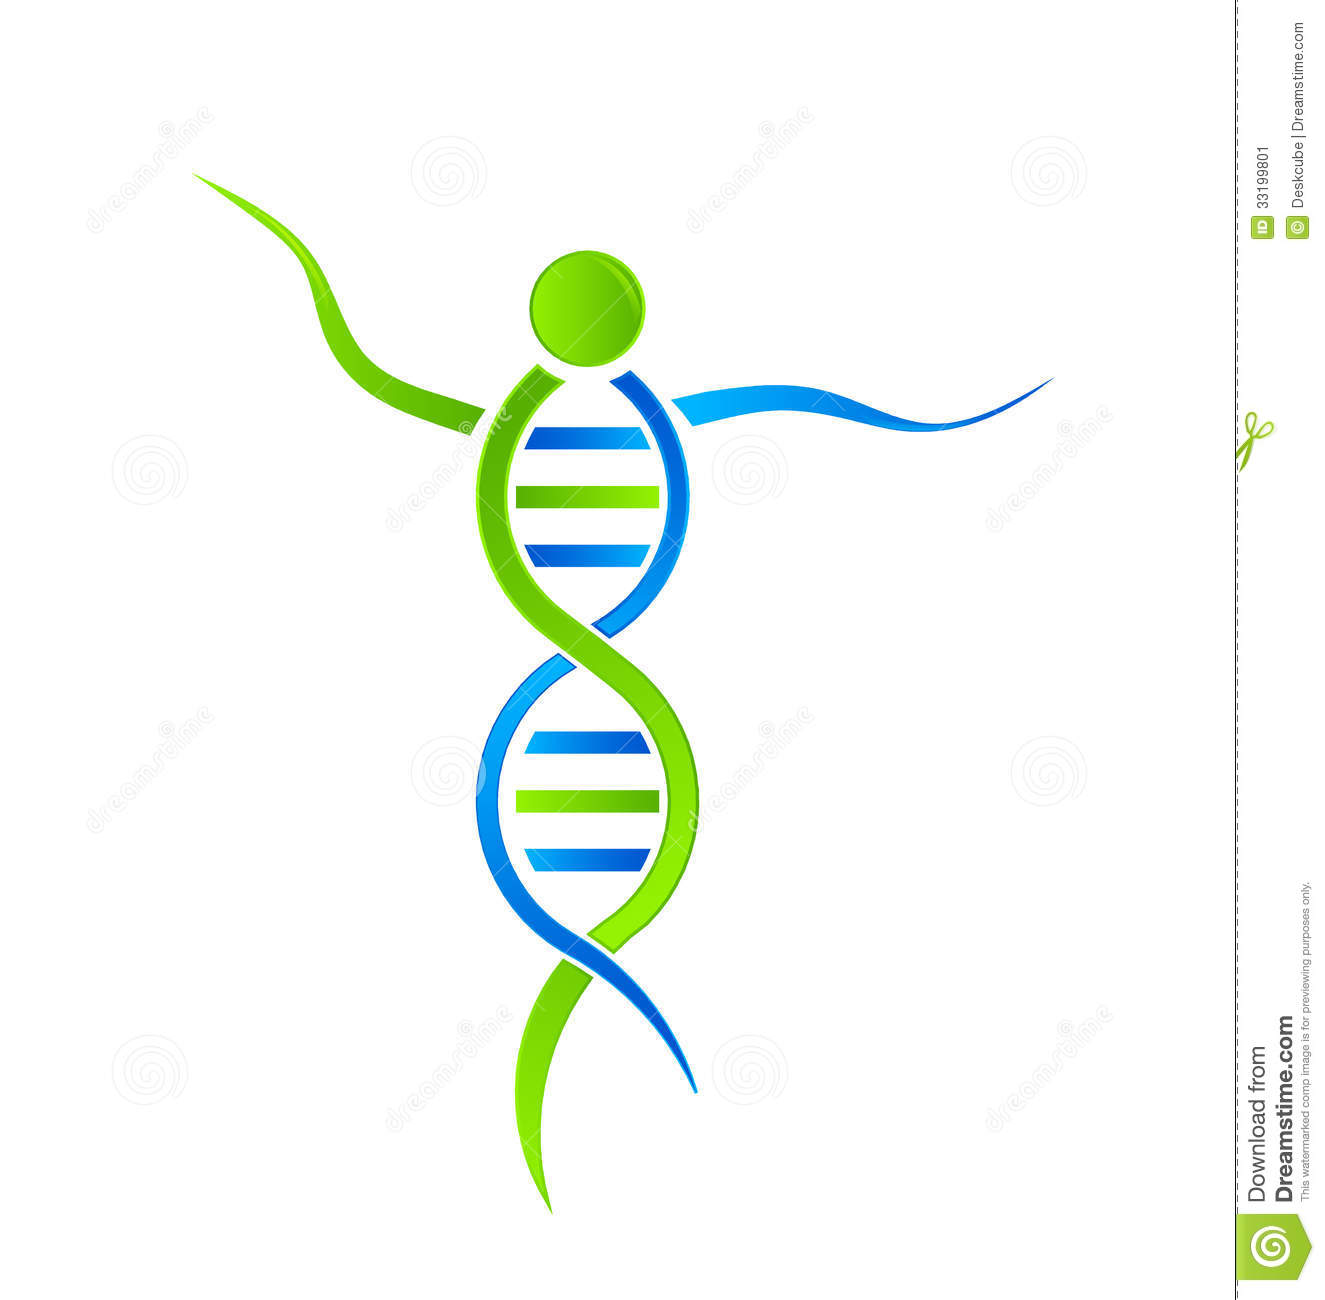 People DNA Stock Image - Image: 33199801